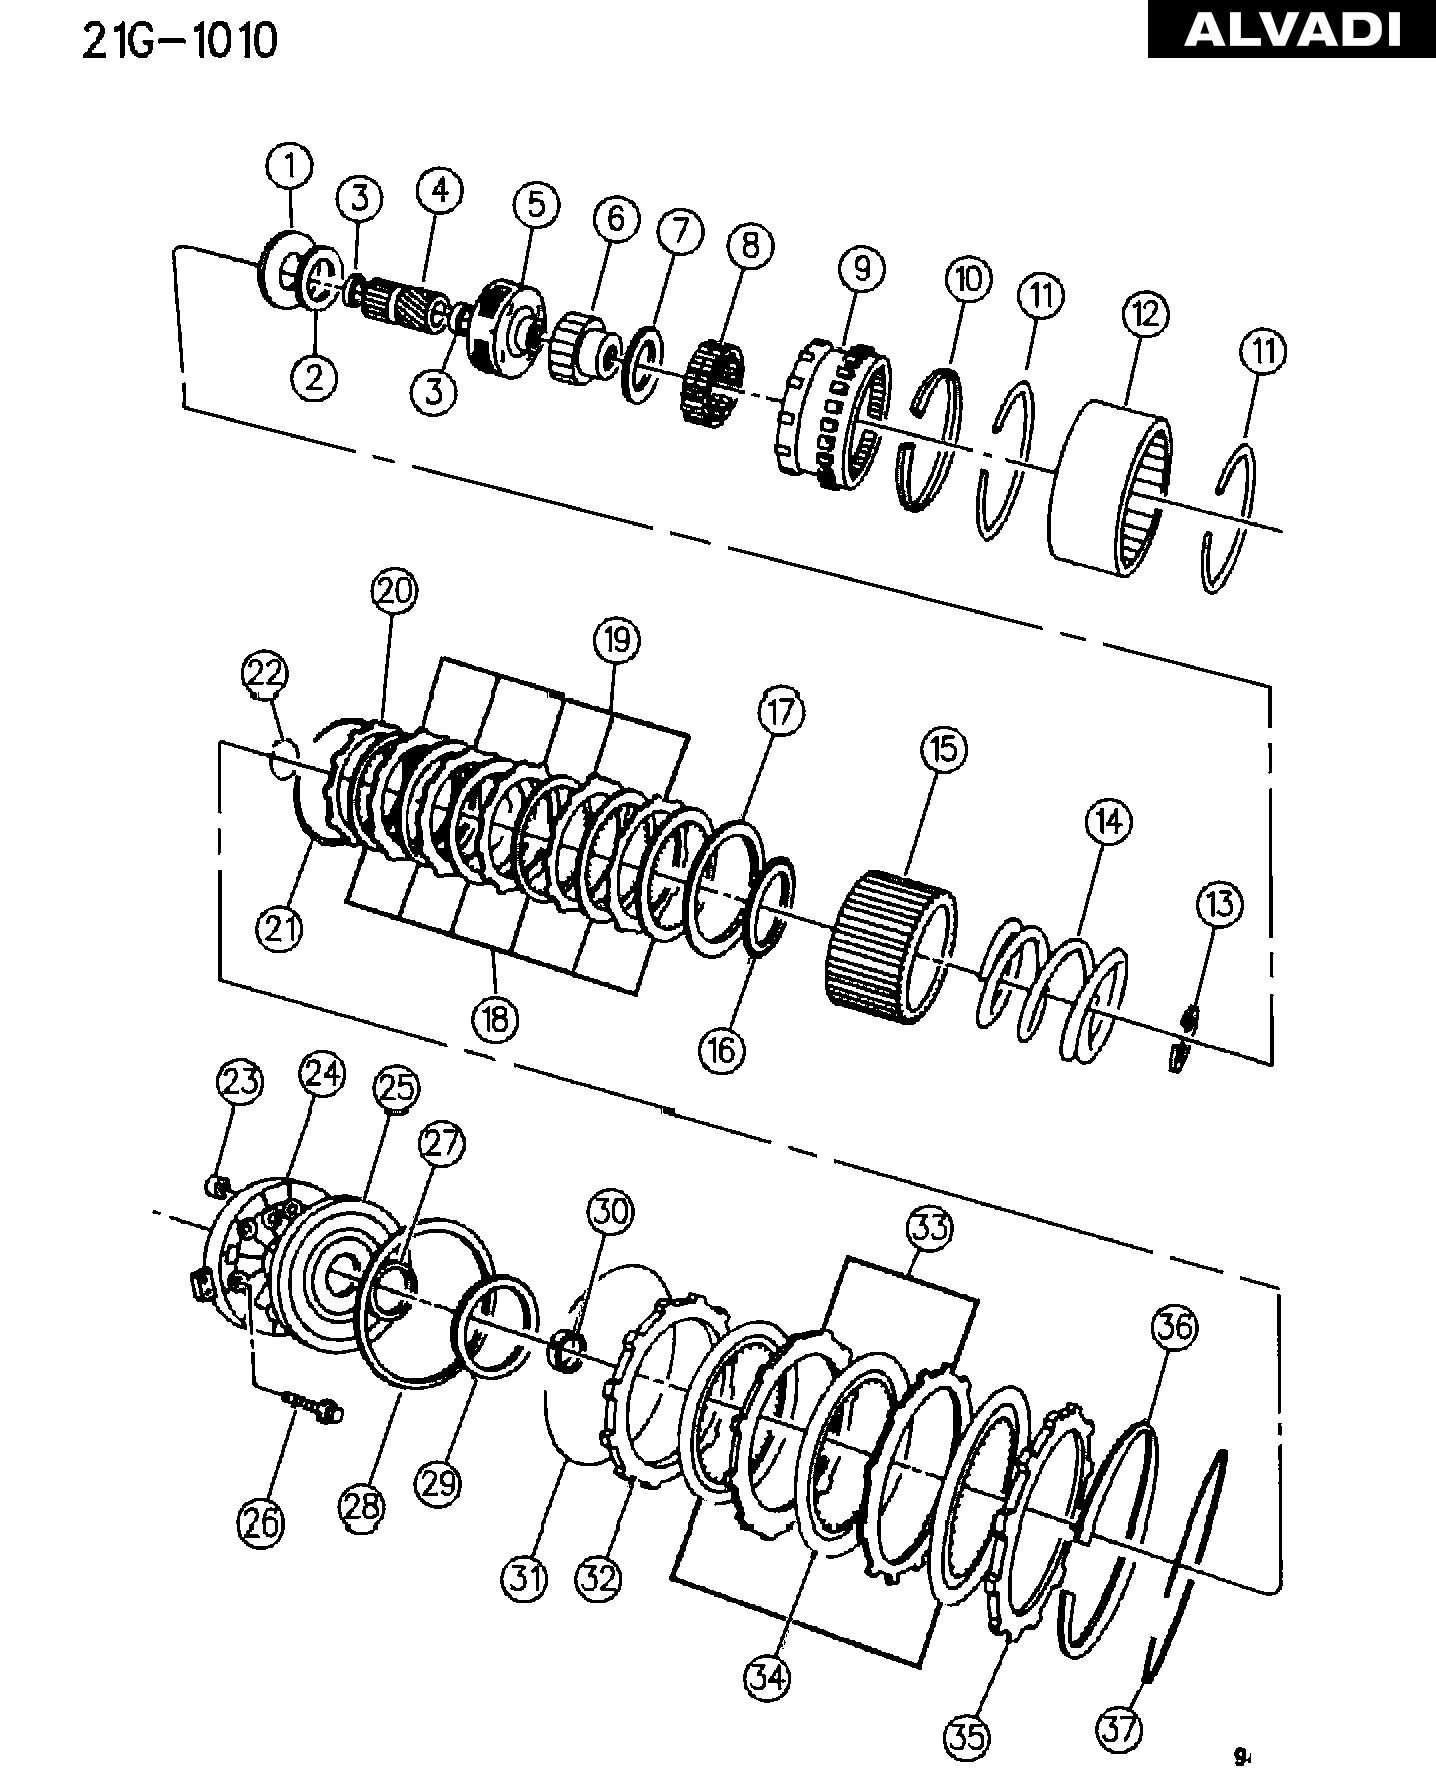 manual transmission clutch diagram my wiring diagram 2015 bmw r1200rt wiring-diagram